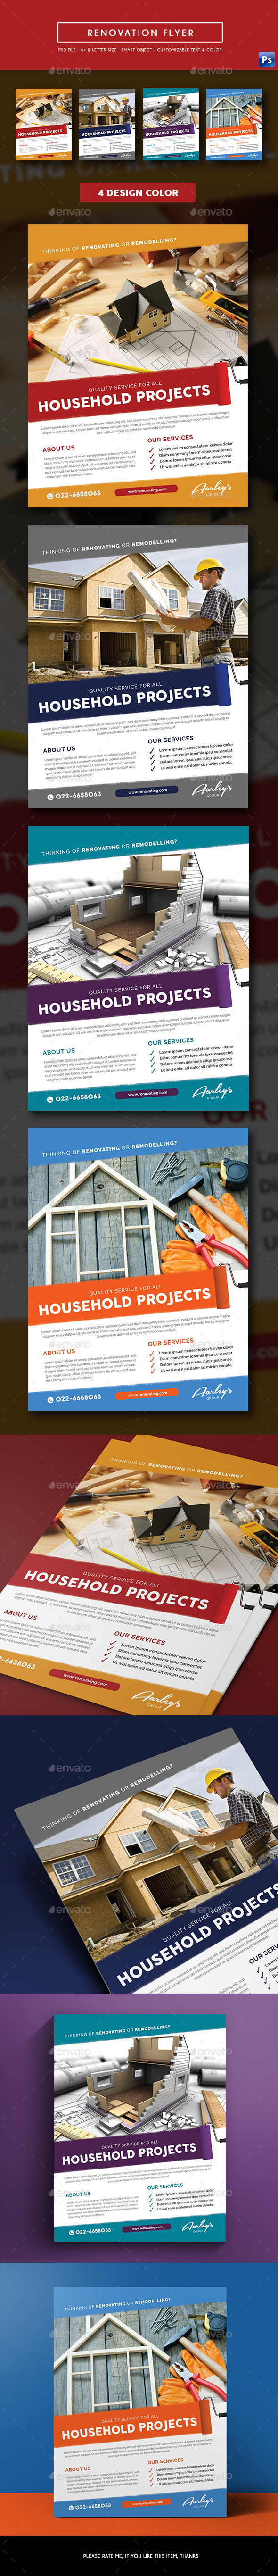 Renovation Flyer - Corporate Flyers